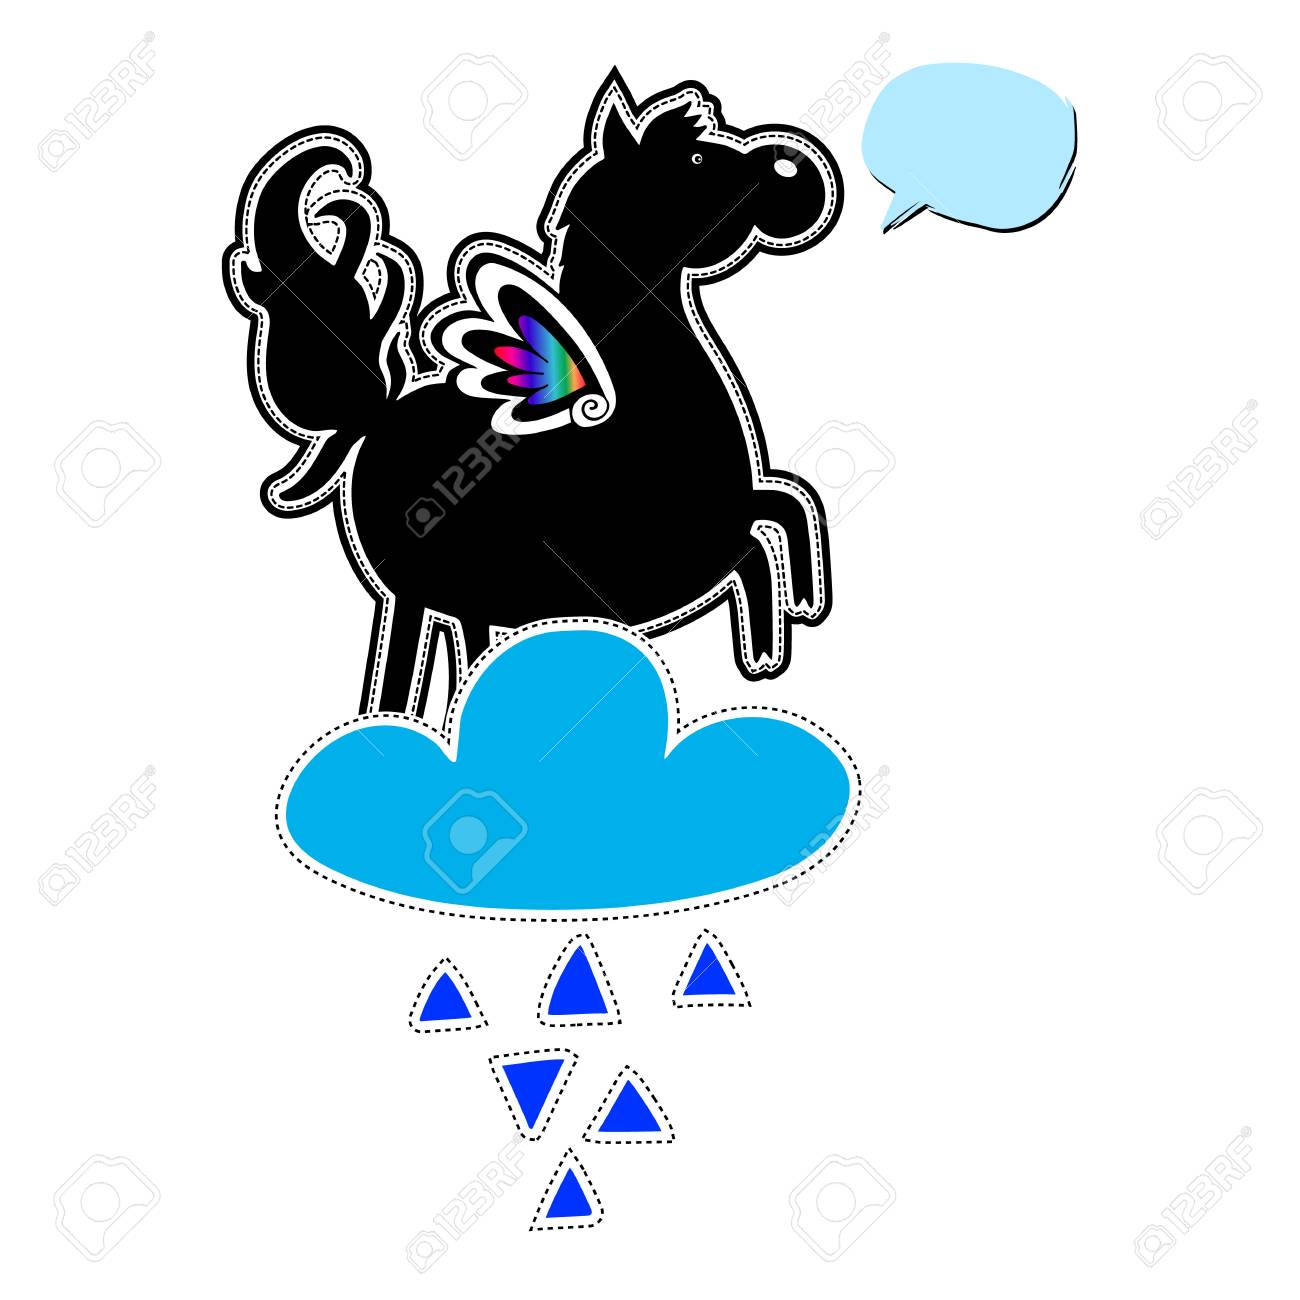 Unicorn Vector Icon Cute Magic Cartoon Fantasy Cute Animal